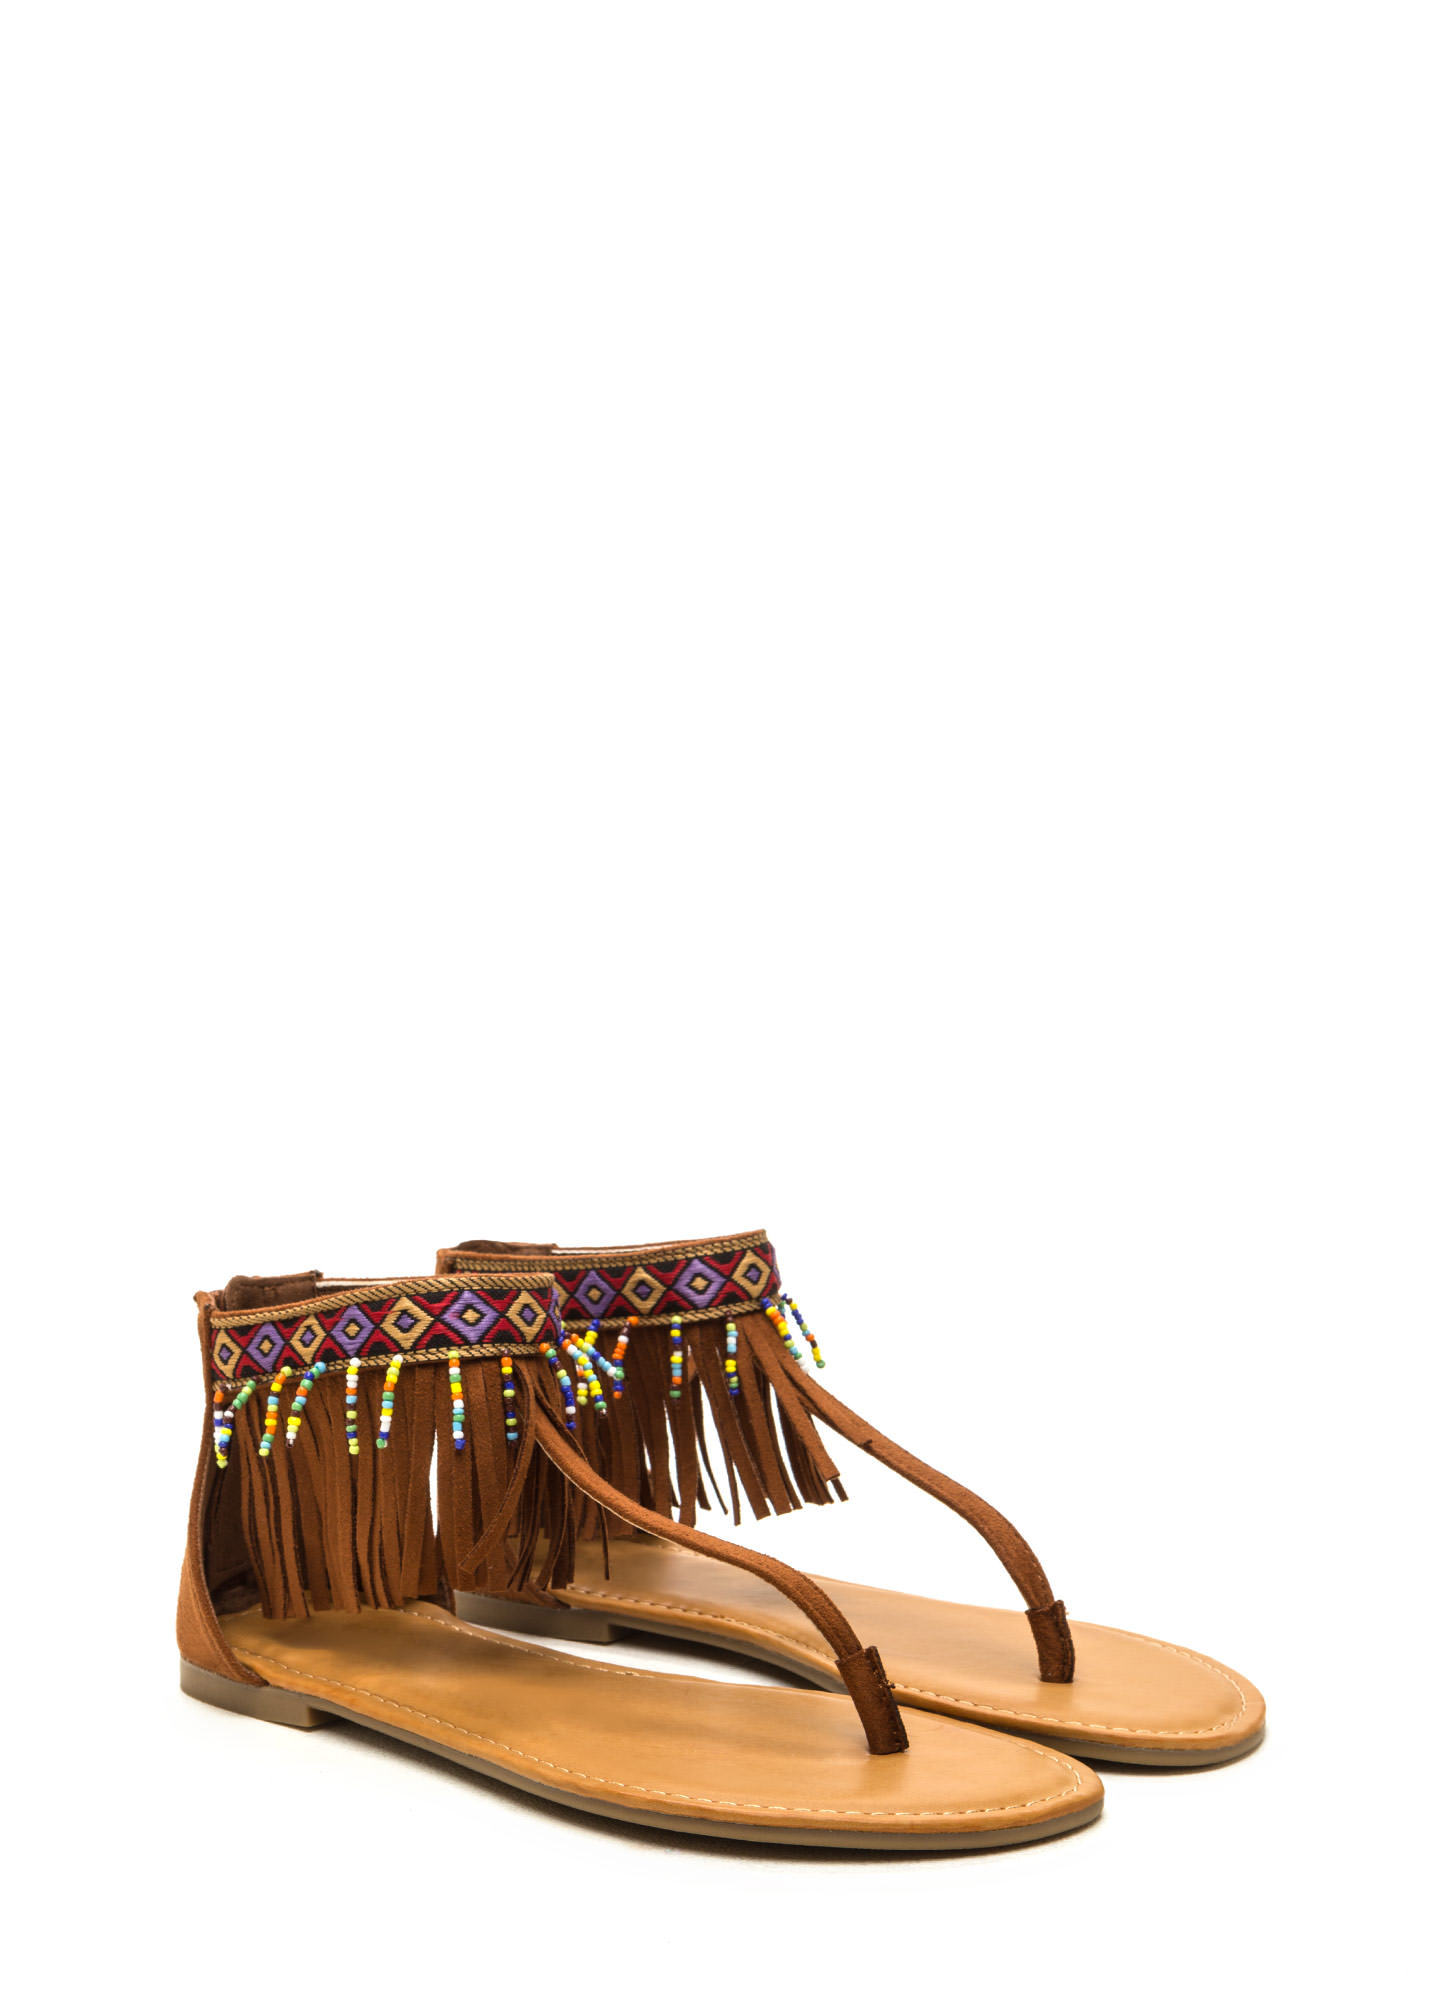 Southwest Explorer Fringed Sandals CHESTNUT